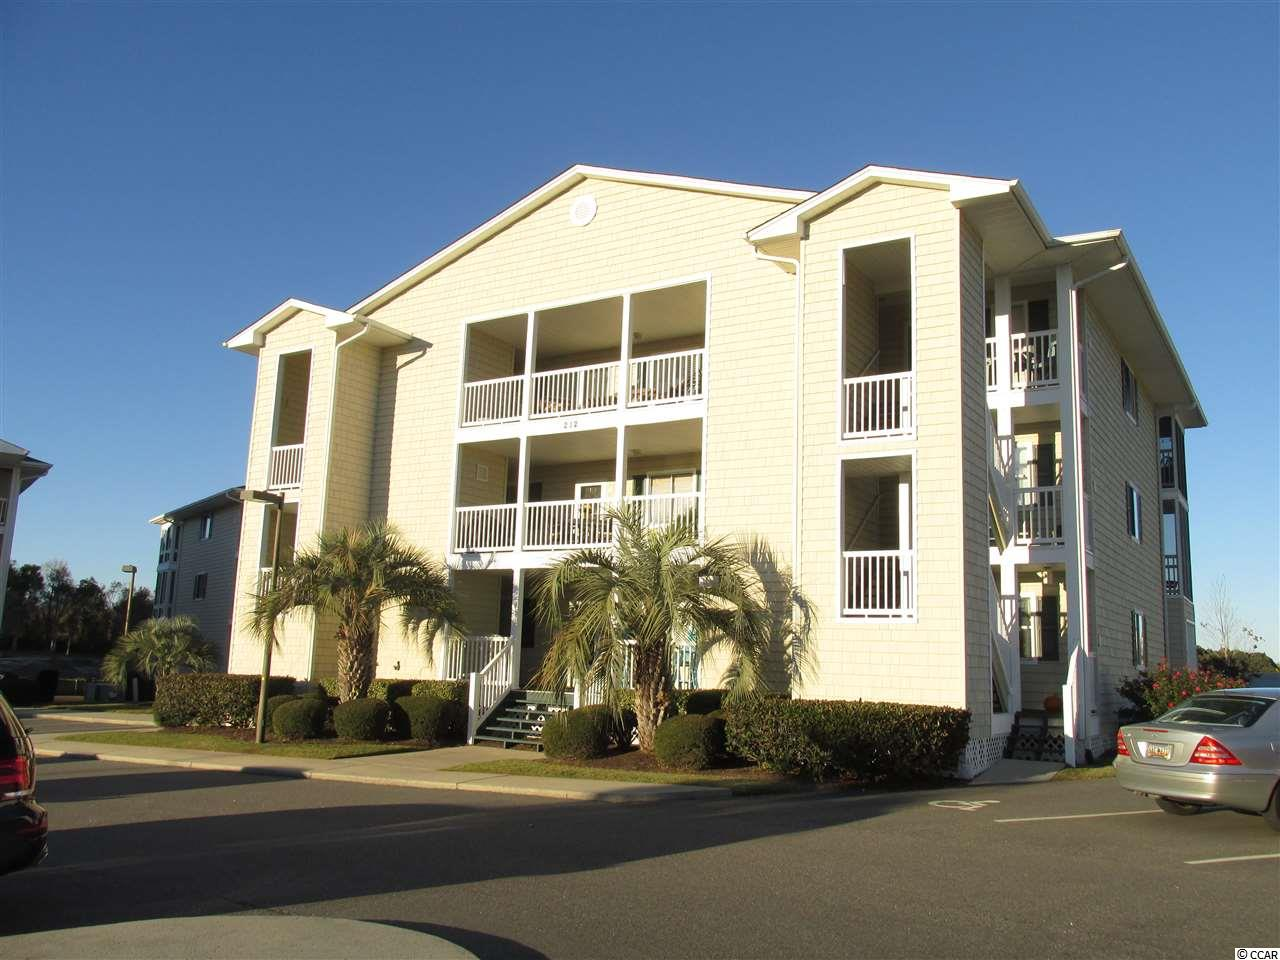 Condo in Waterway Landing - NMB : North Myrtle Beach South Carolina